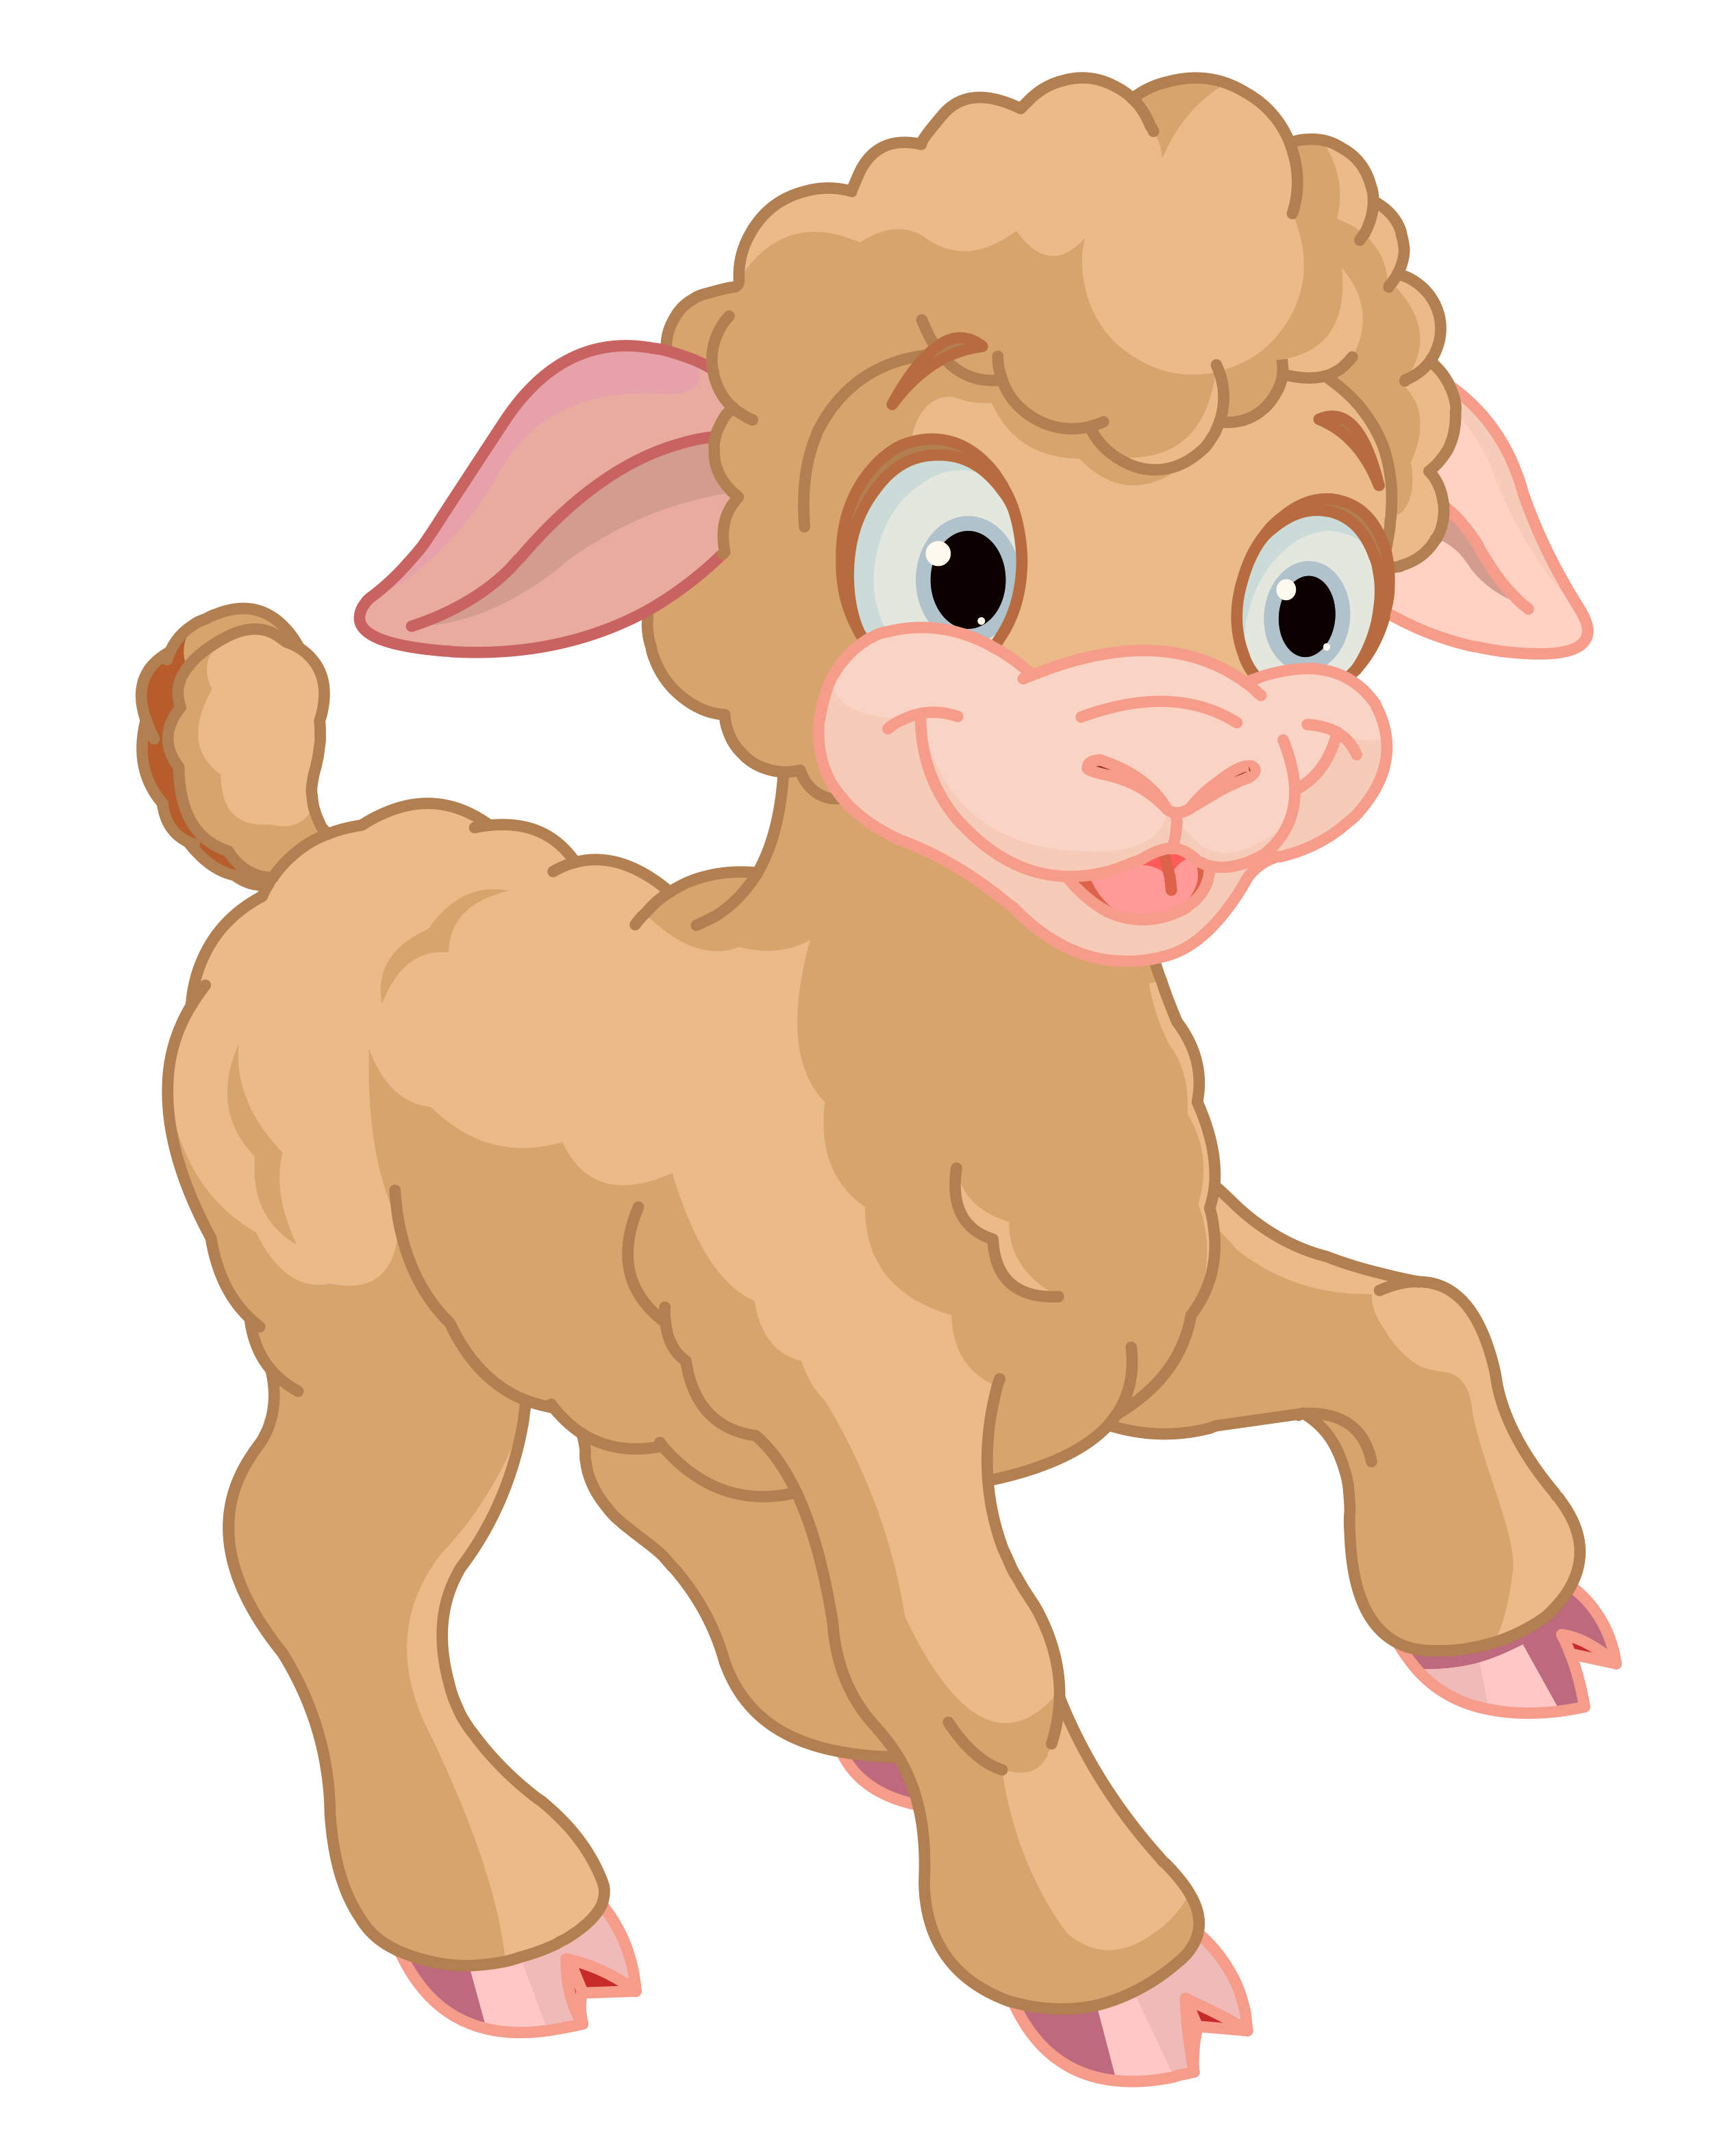 Lamb Png Free - Cute Little Lamb PNG Clipart   Gallery Yopriceville - High ...